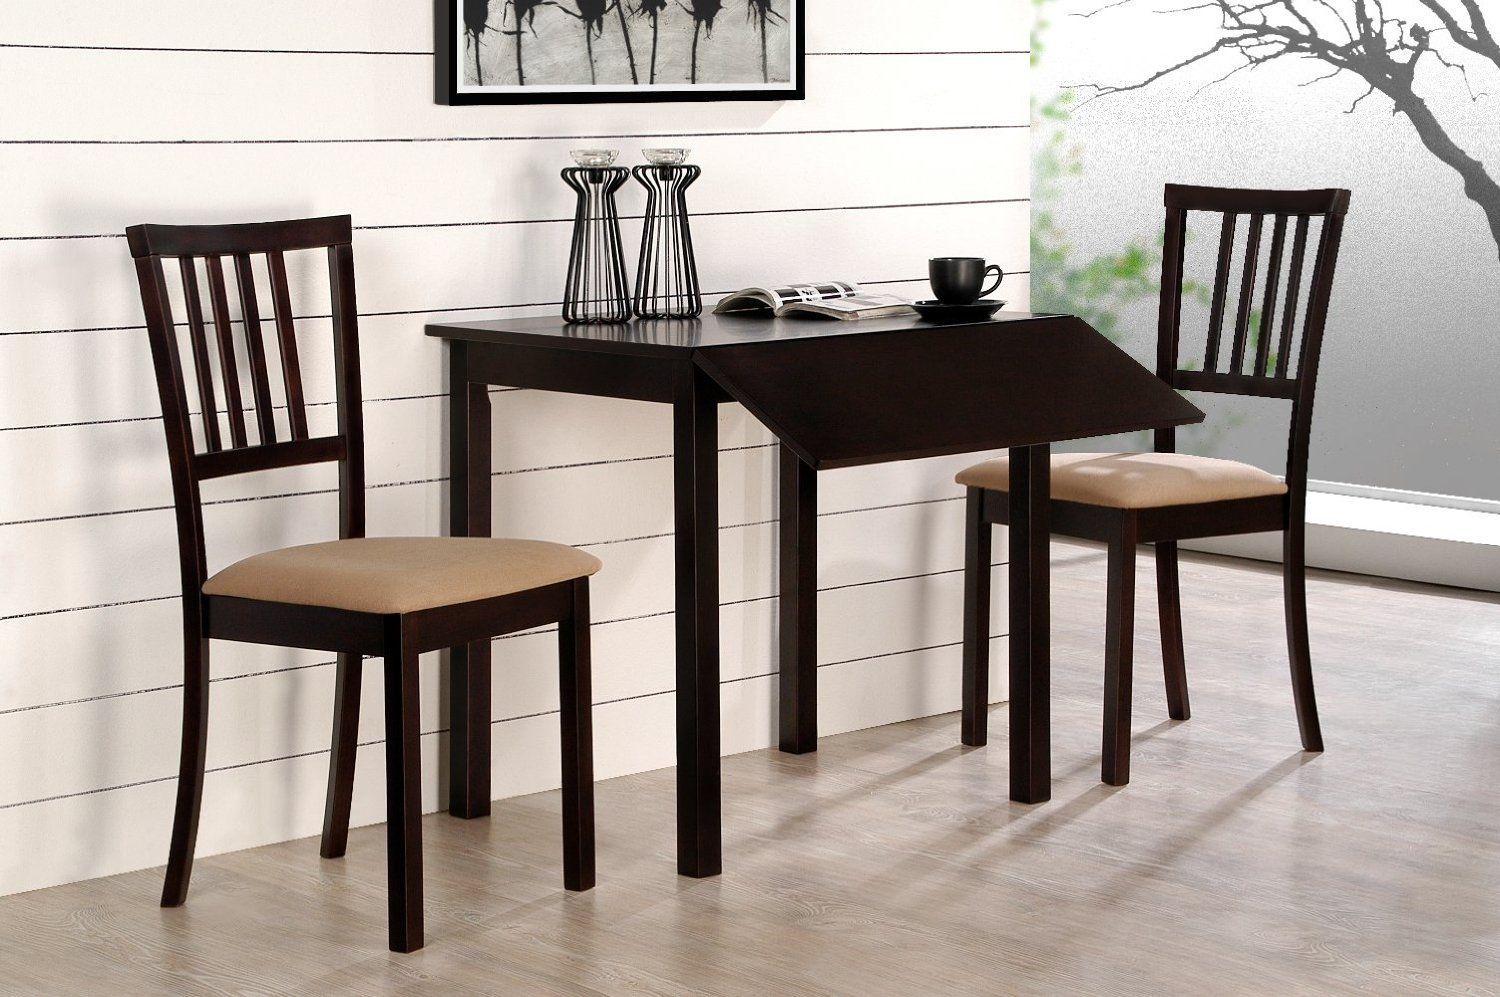 Kitchen Table And Chairs For Small Spaces: The Best Options for